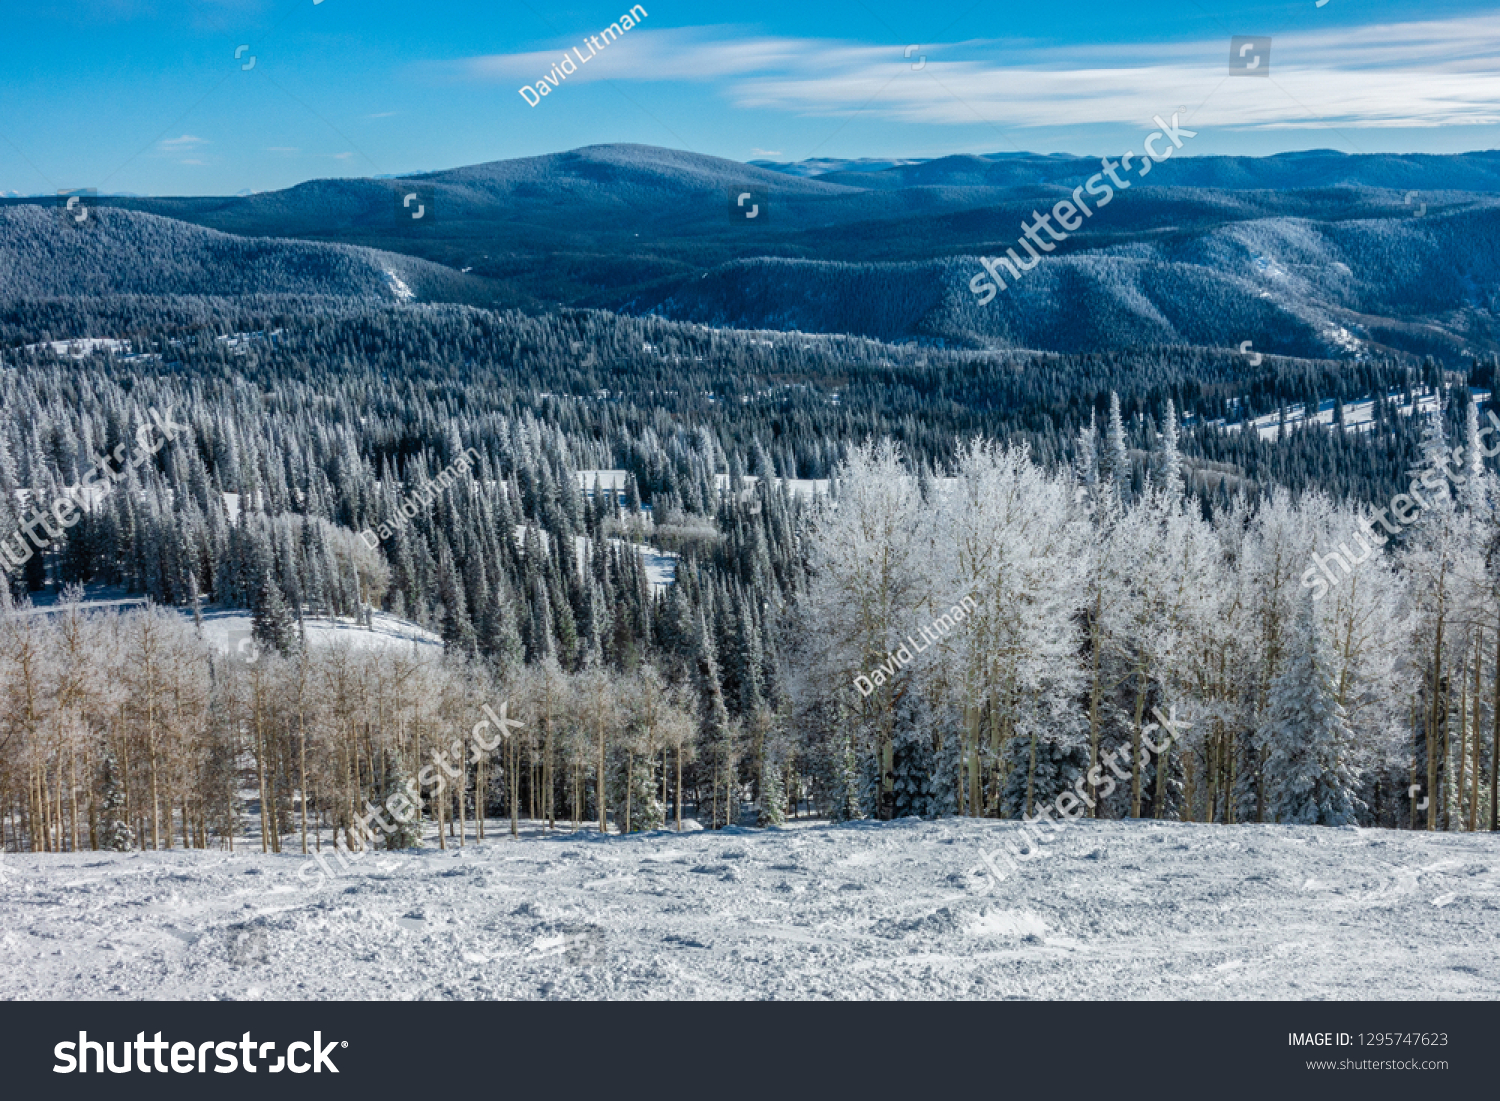 The ski slopes of Steamboat Springs ski resort, on Mount Werner in the Rocky Mountins of Colorado,  are lined by snow covered Aspen and Pine trees during a snowy winter season.